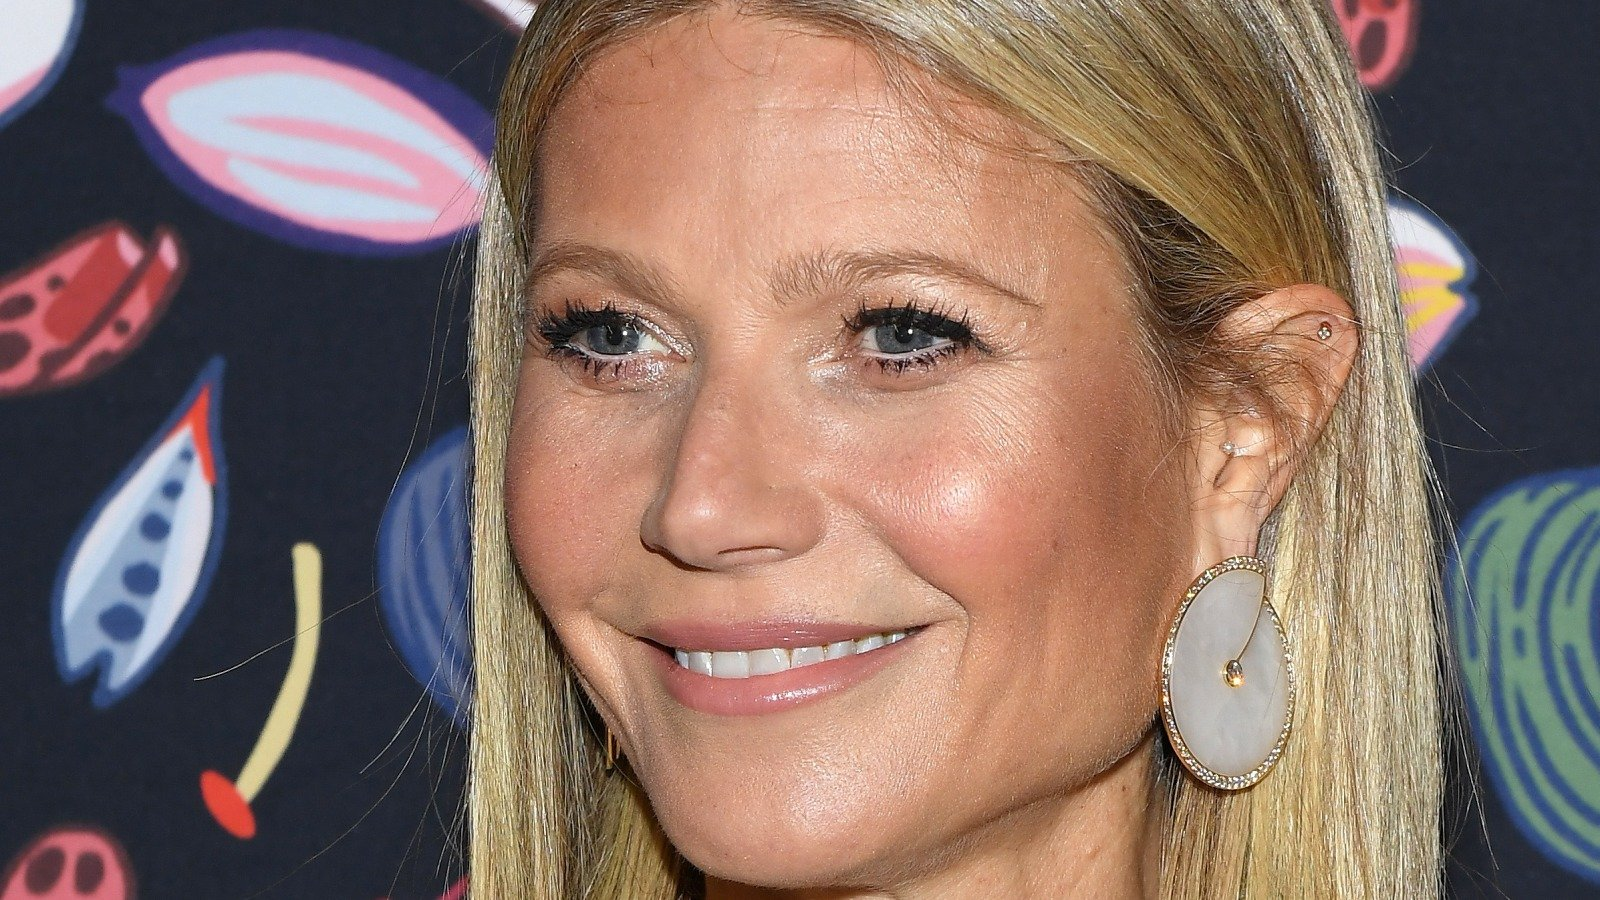 What Gwyneth Paltrow Really Looks Like Under All That Makeup